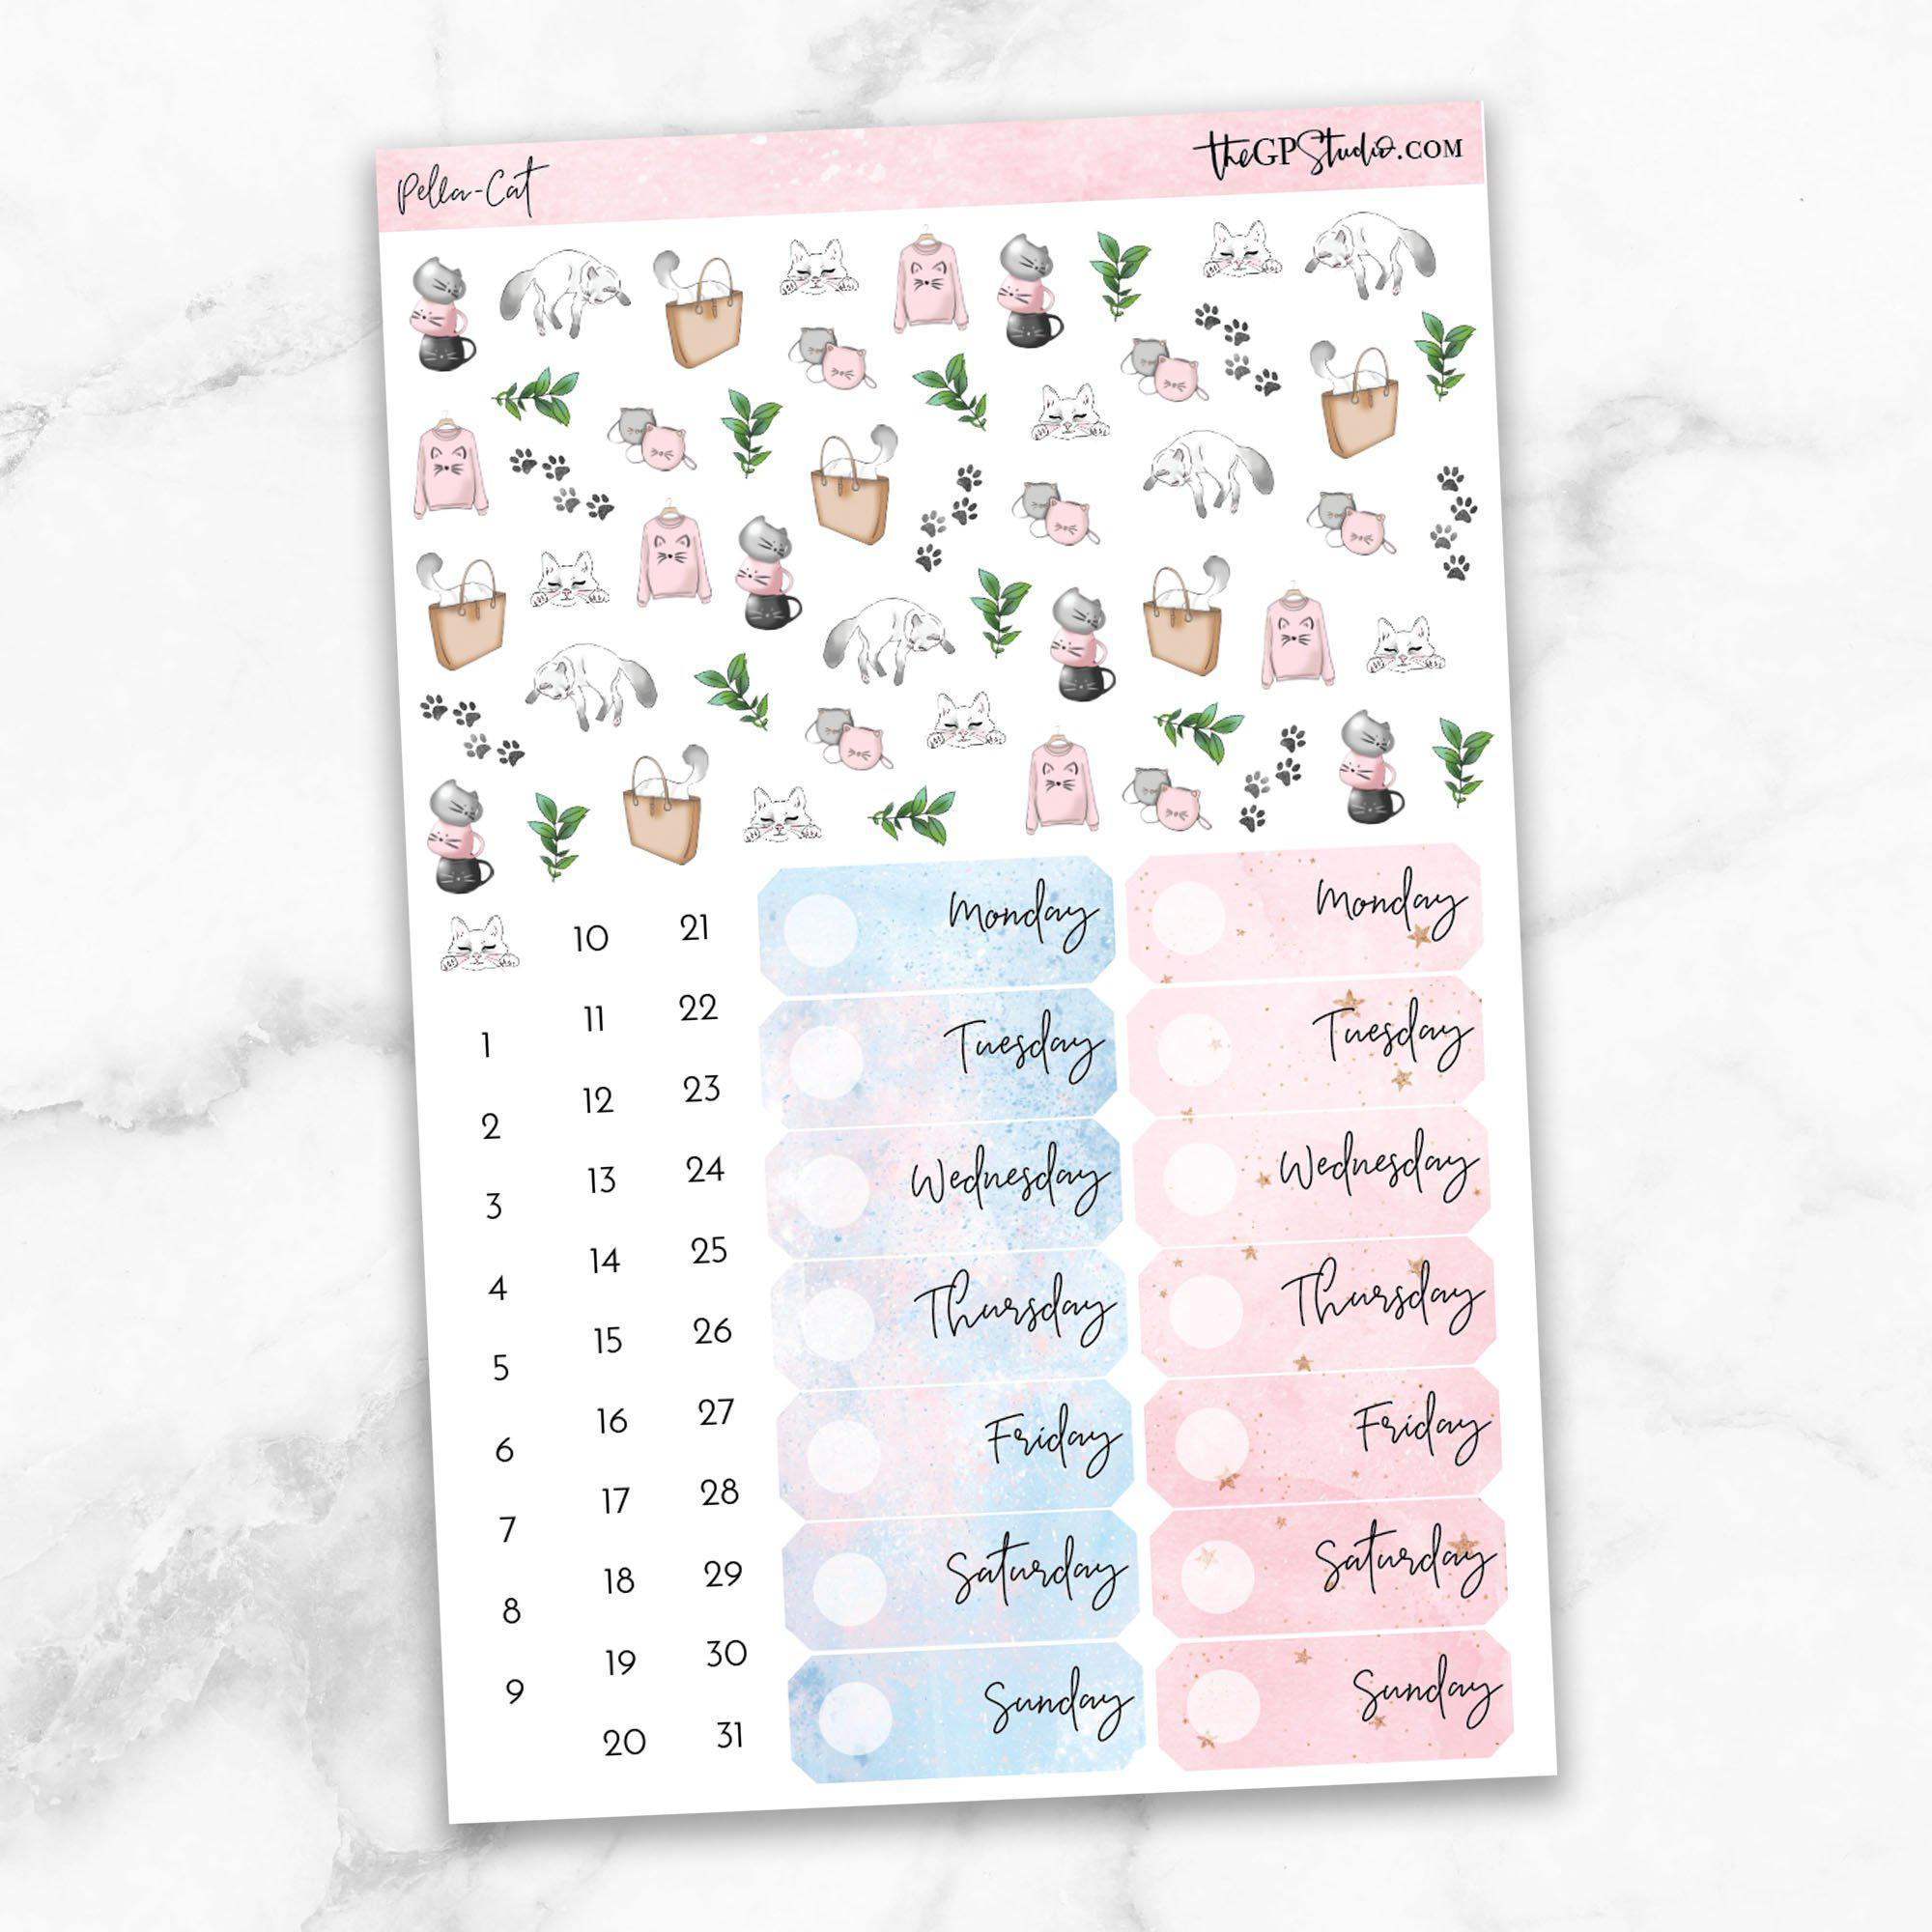 PELLA CAT KIT Deco & Date Cover Stickers-The GP Studio